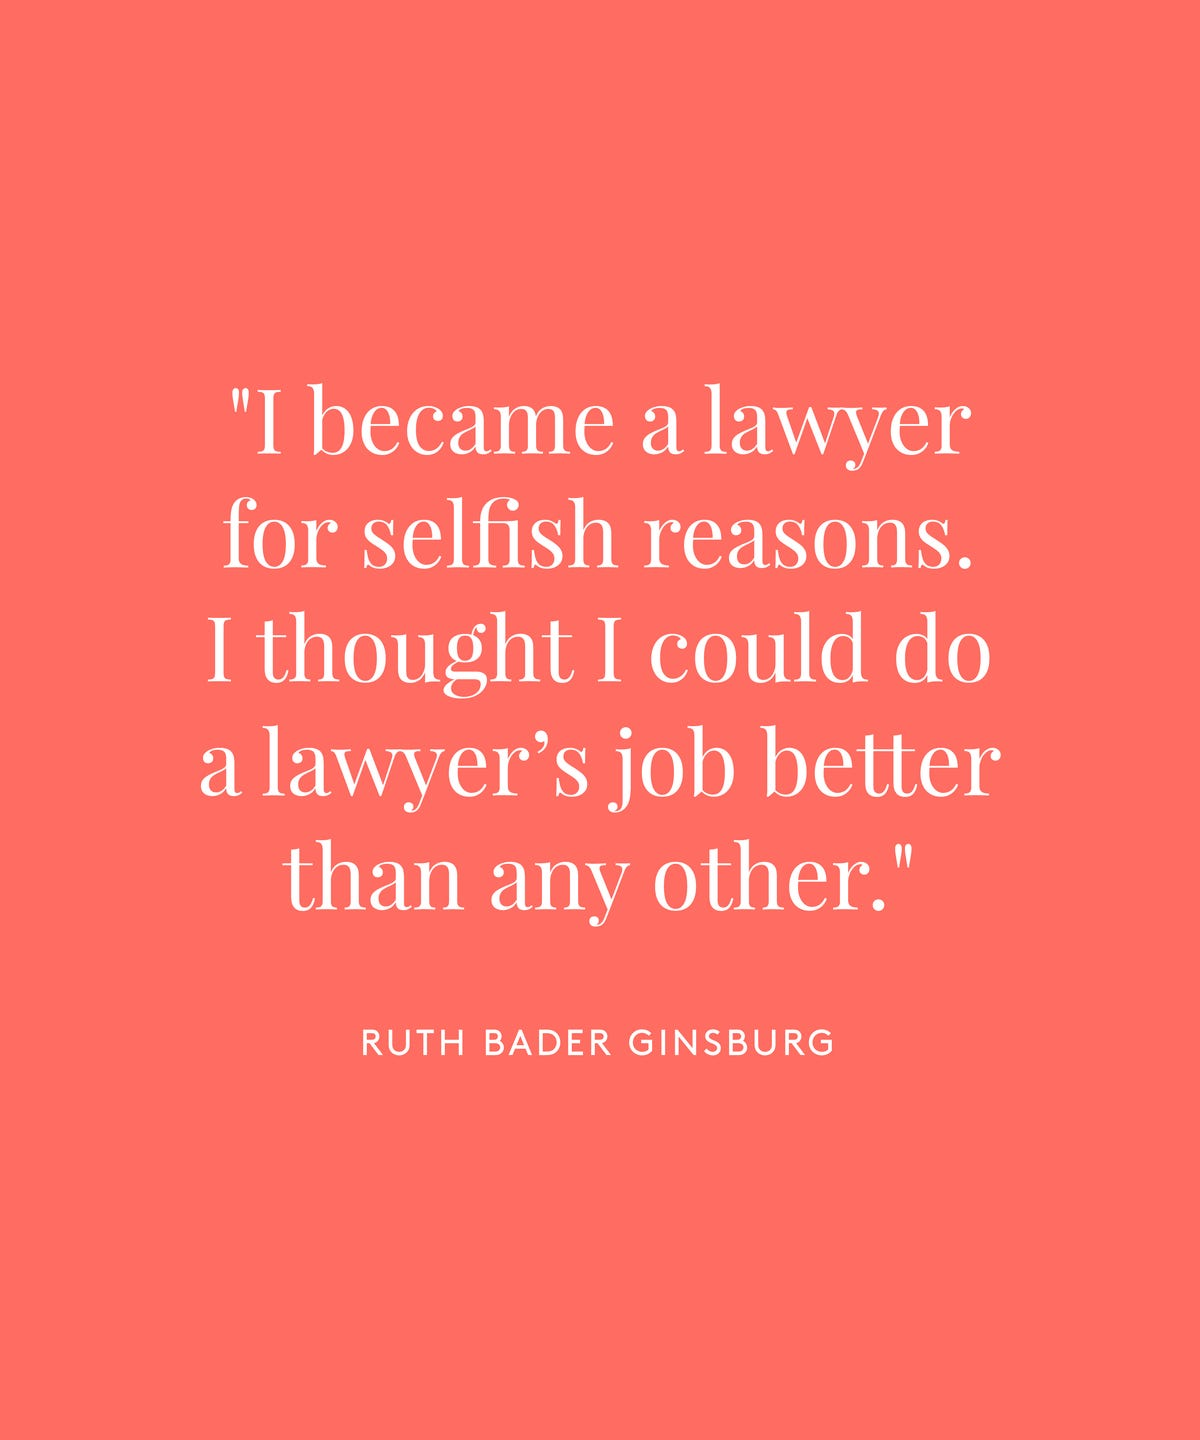 Best Ruth Bader Ginsburg Quotes On Her 85th Birthday